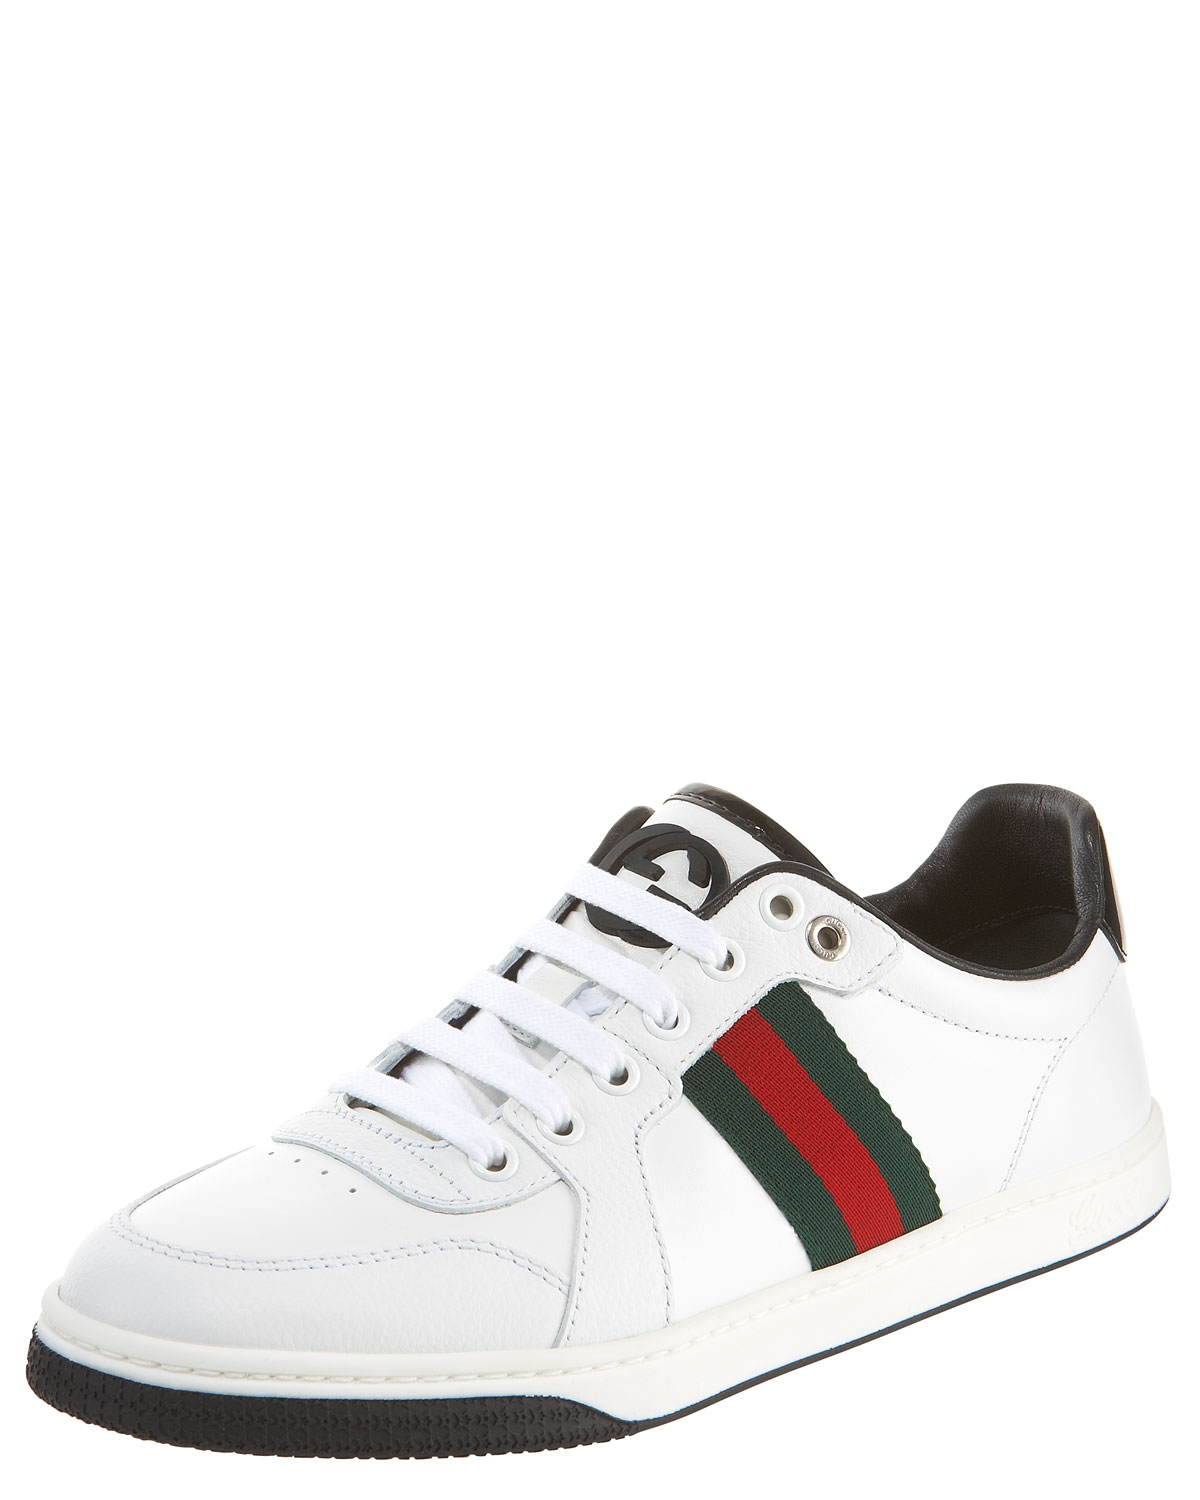 f5f81c599 Gucci Coda Low Lace-up Sneaker in White - Lyst